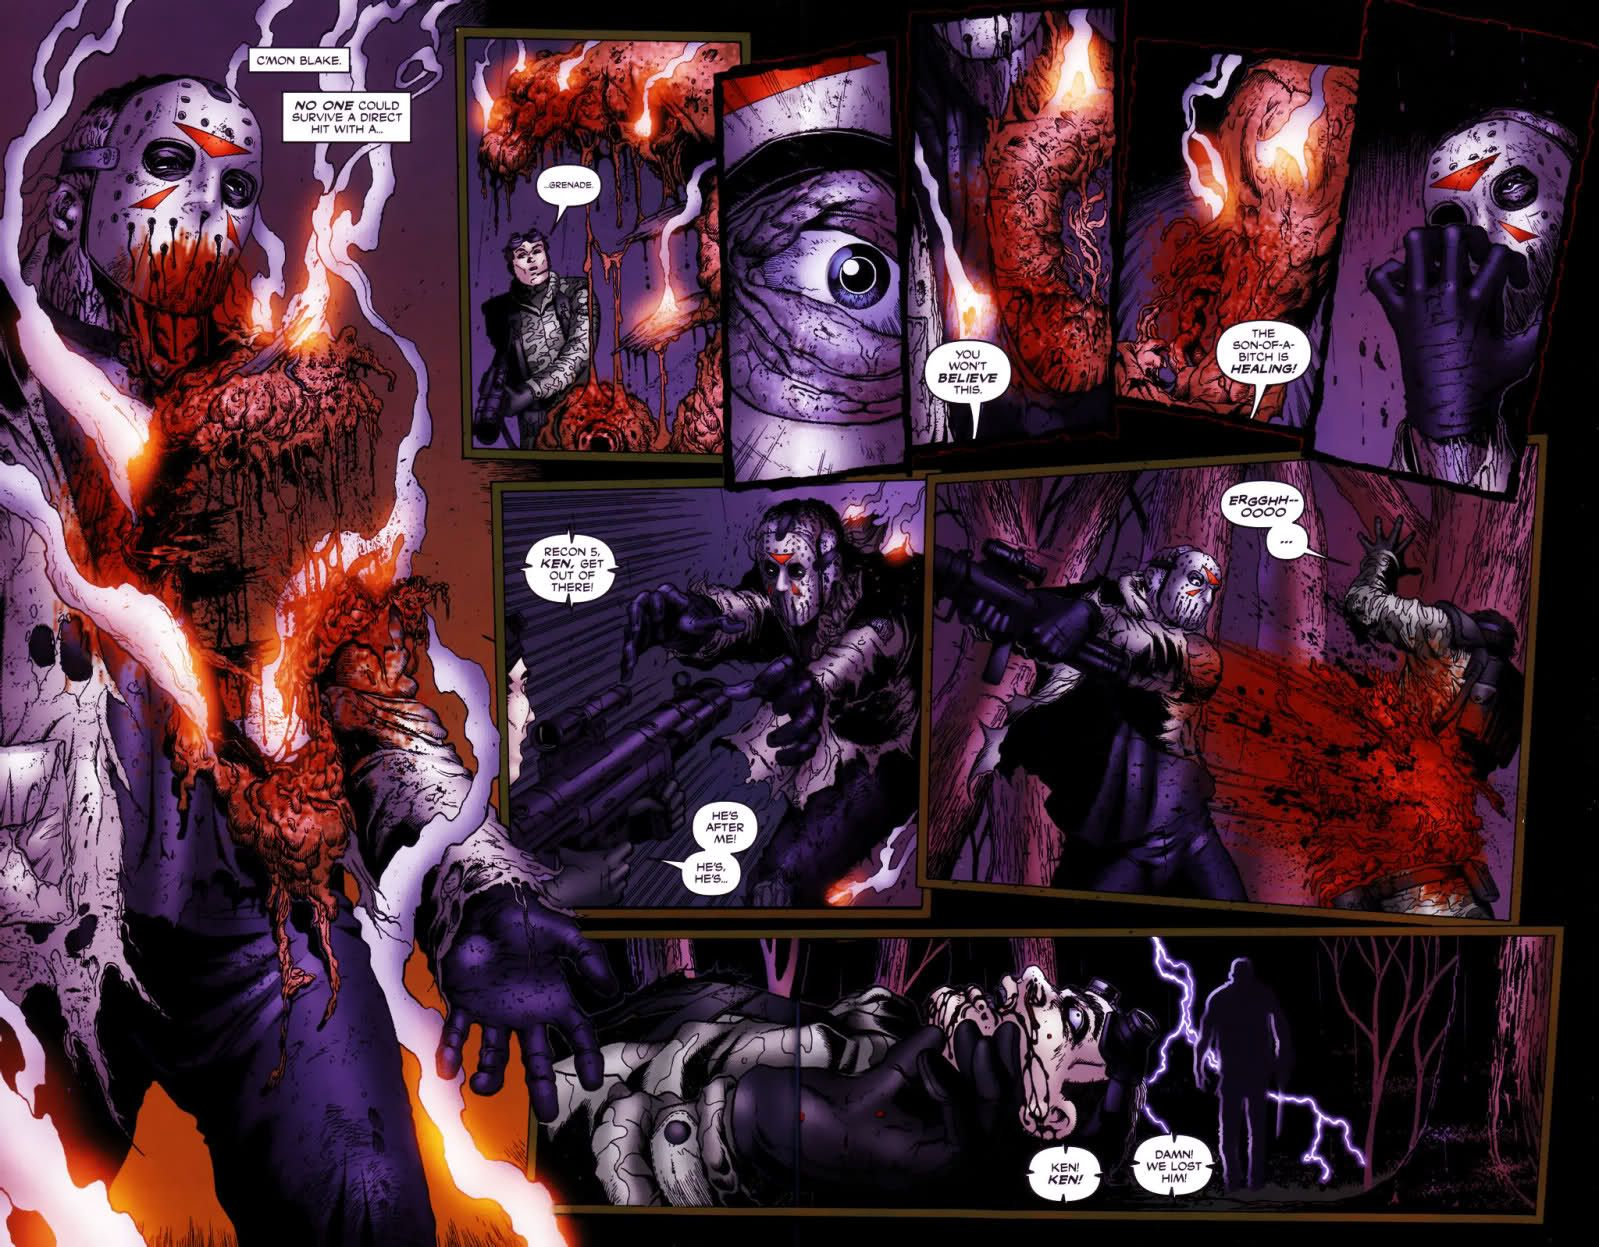 Image result for Jason taking a grenade comic